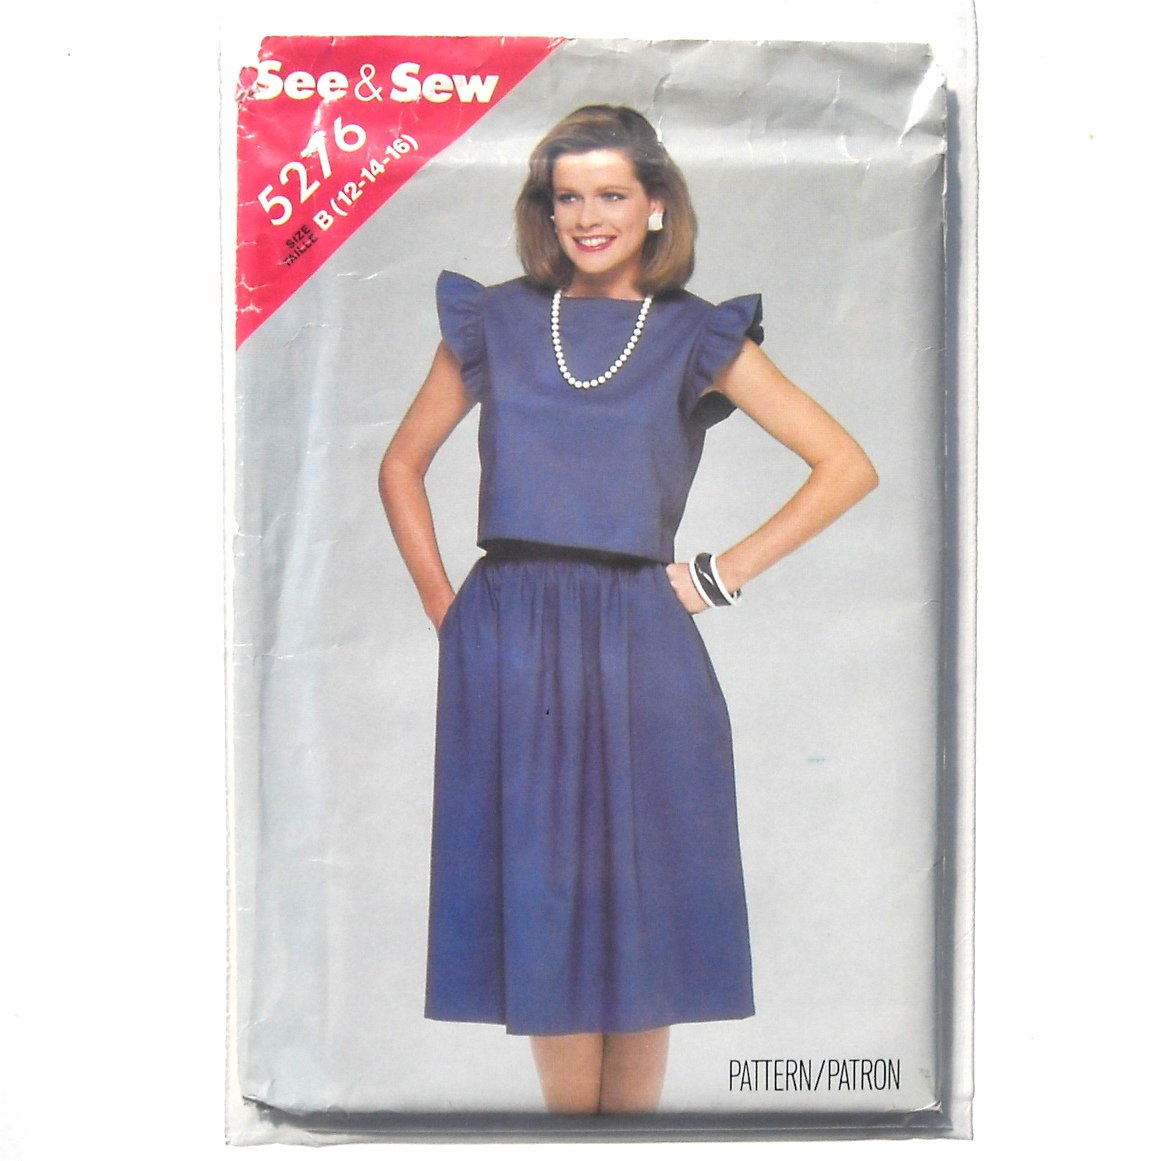 Top & Skirt Size 12 - 16 See Sew Butterick Sewing Pattern 5276